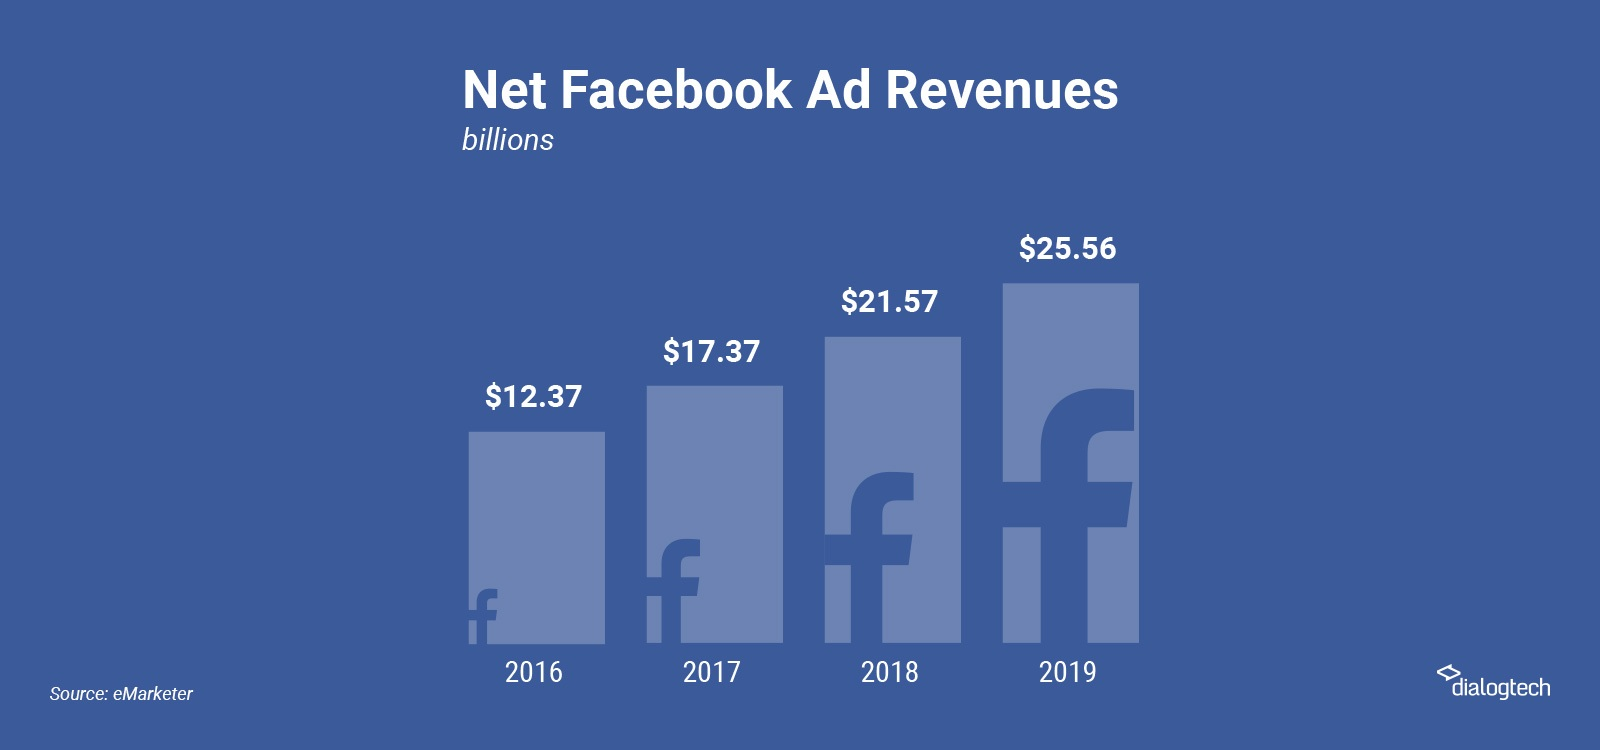 Companies are increasing their Facebook ad spend